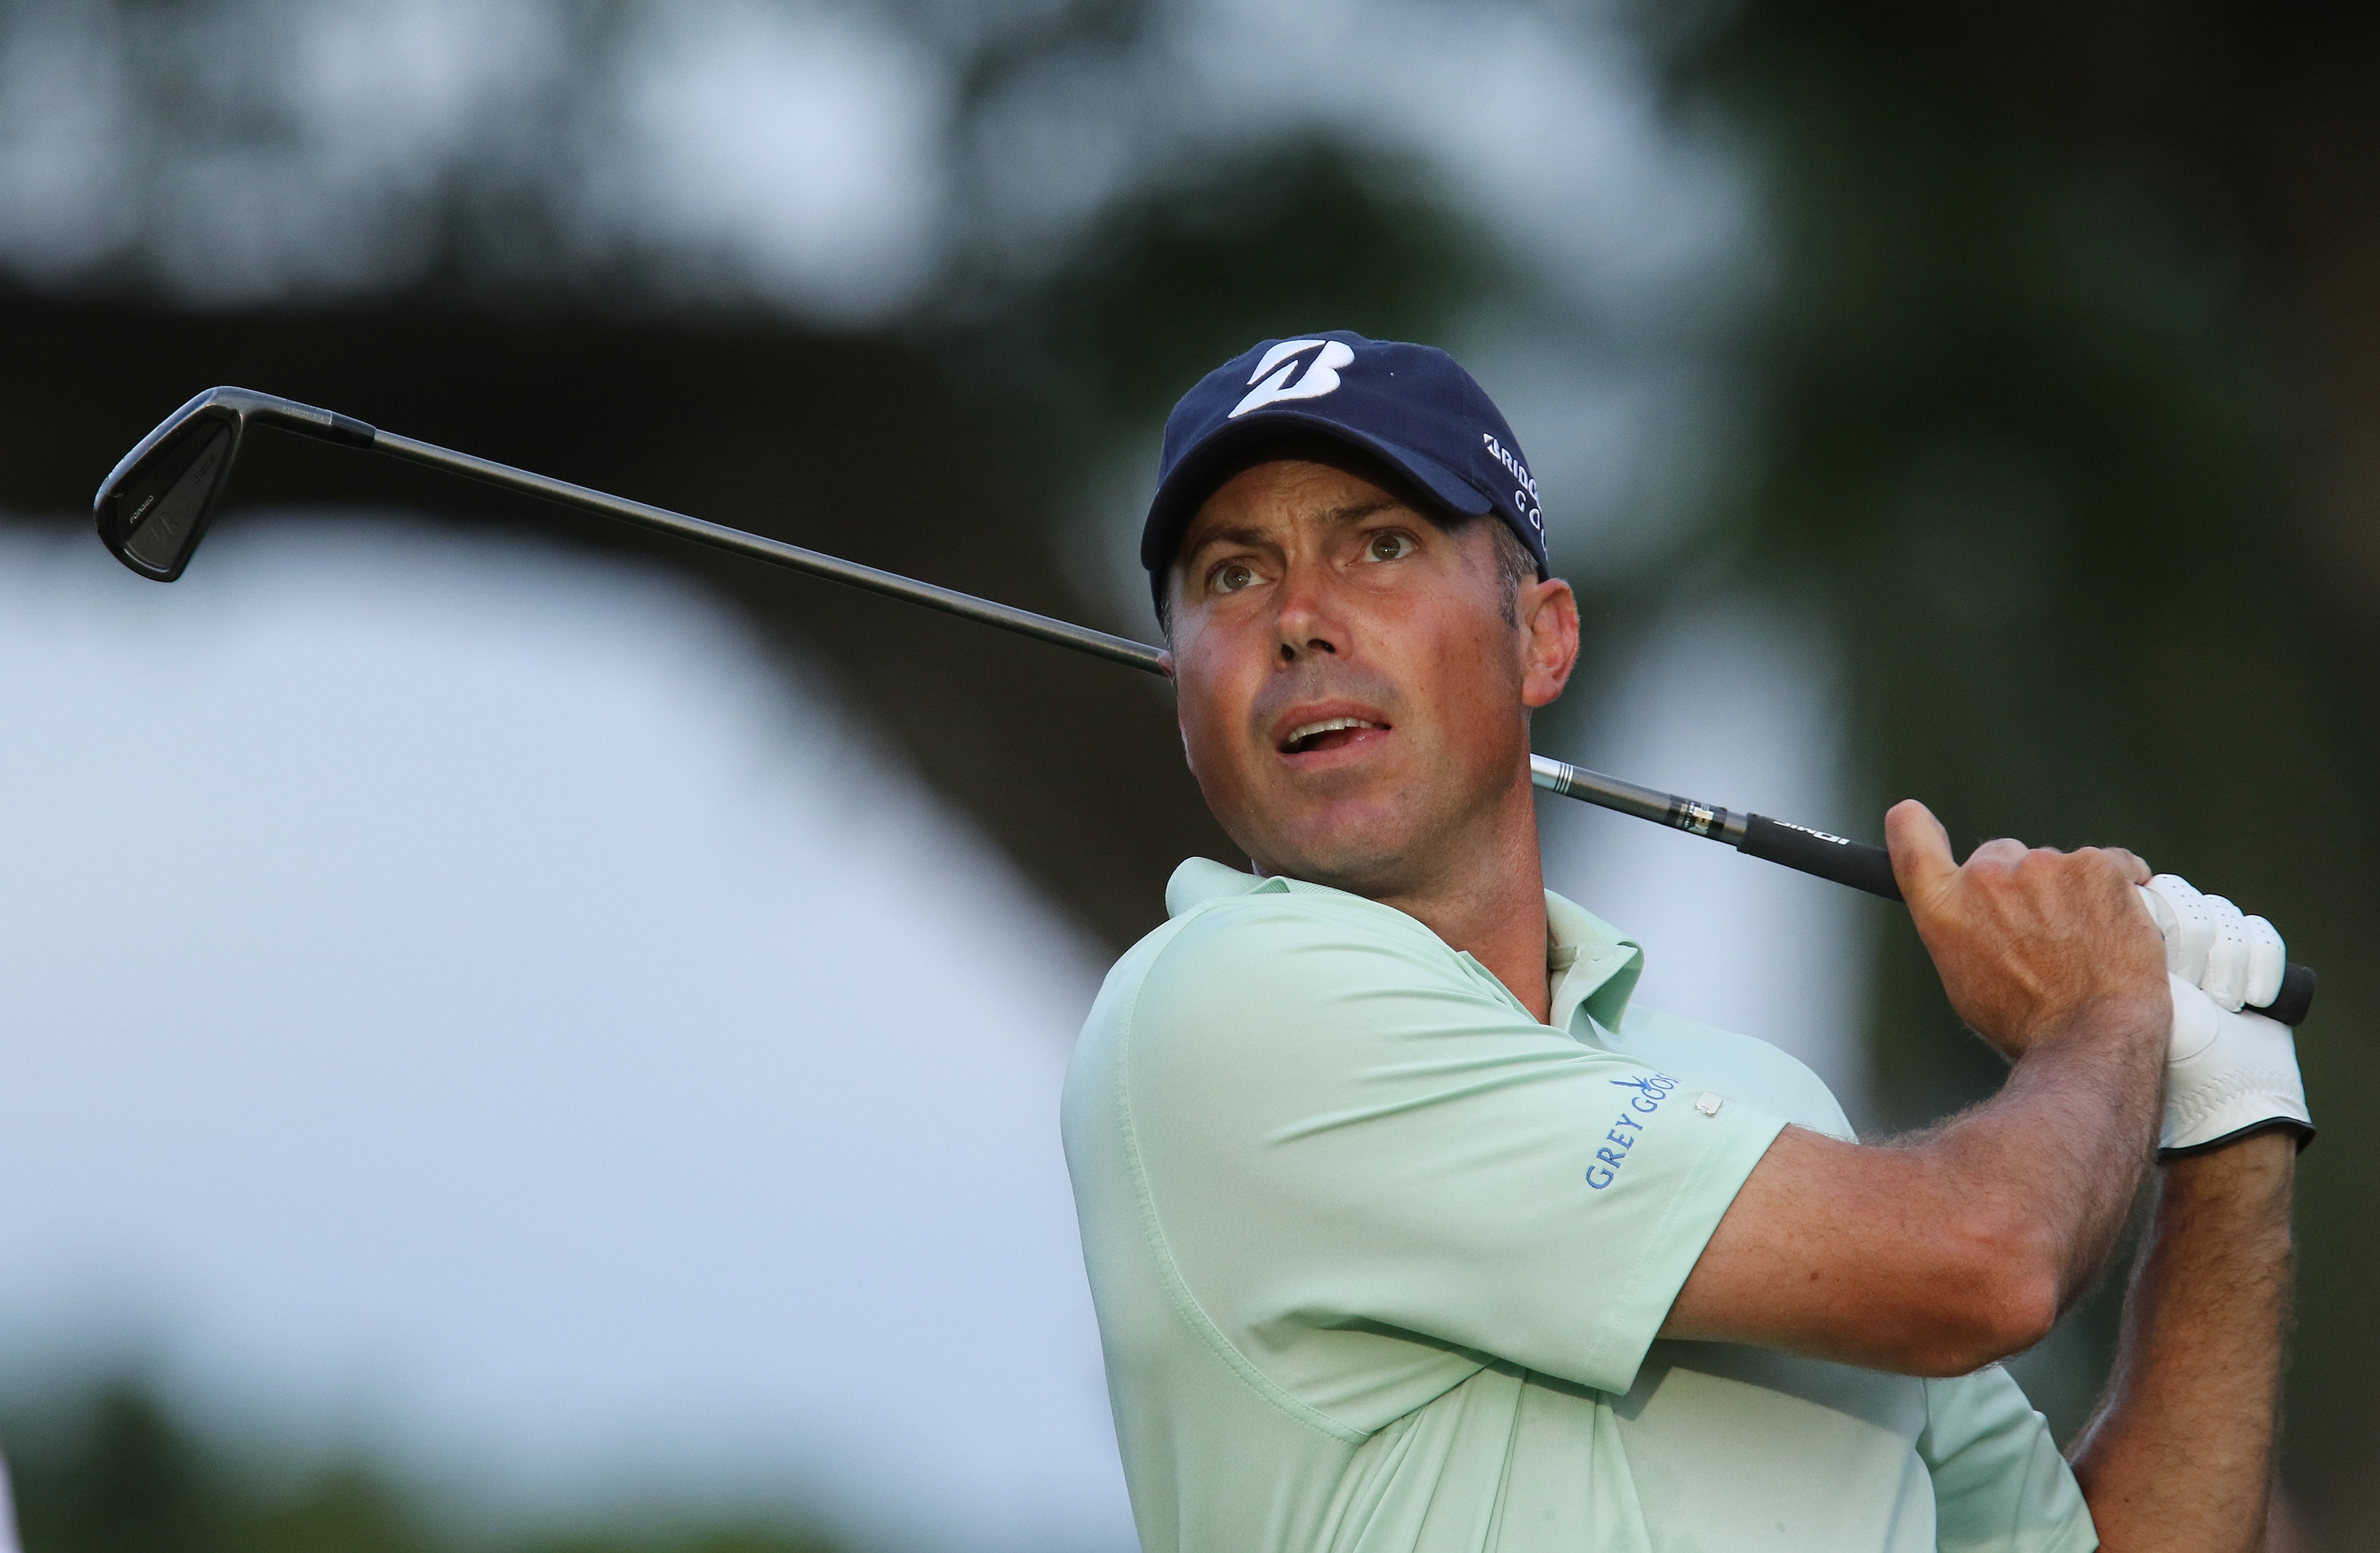 Matt Kuchar follows his ball after teeing off on the 11th holeduring the first round of the Sony Open golf tournament, Thursday, Jan, 15, 2015, in Honolulu, Hawaii.  (AP Photo/Hugh